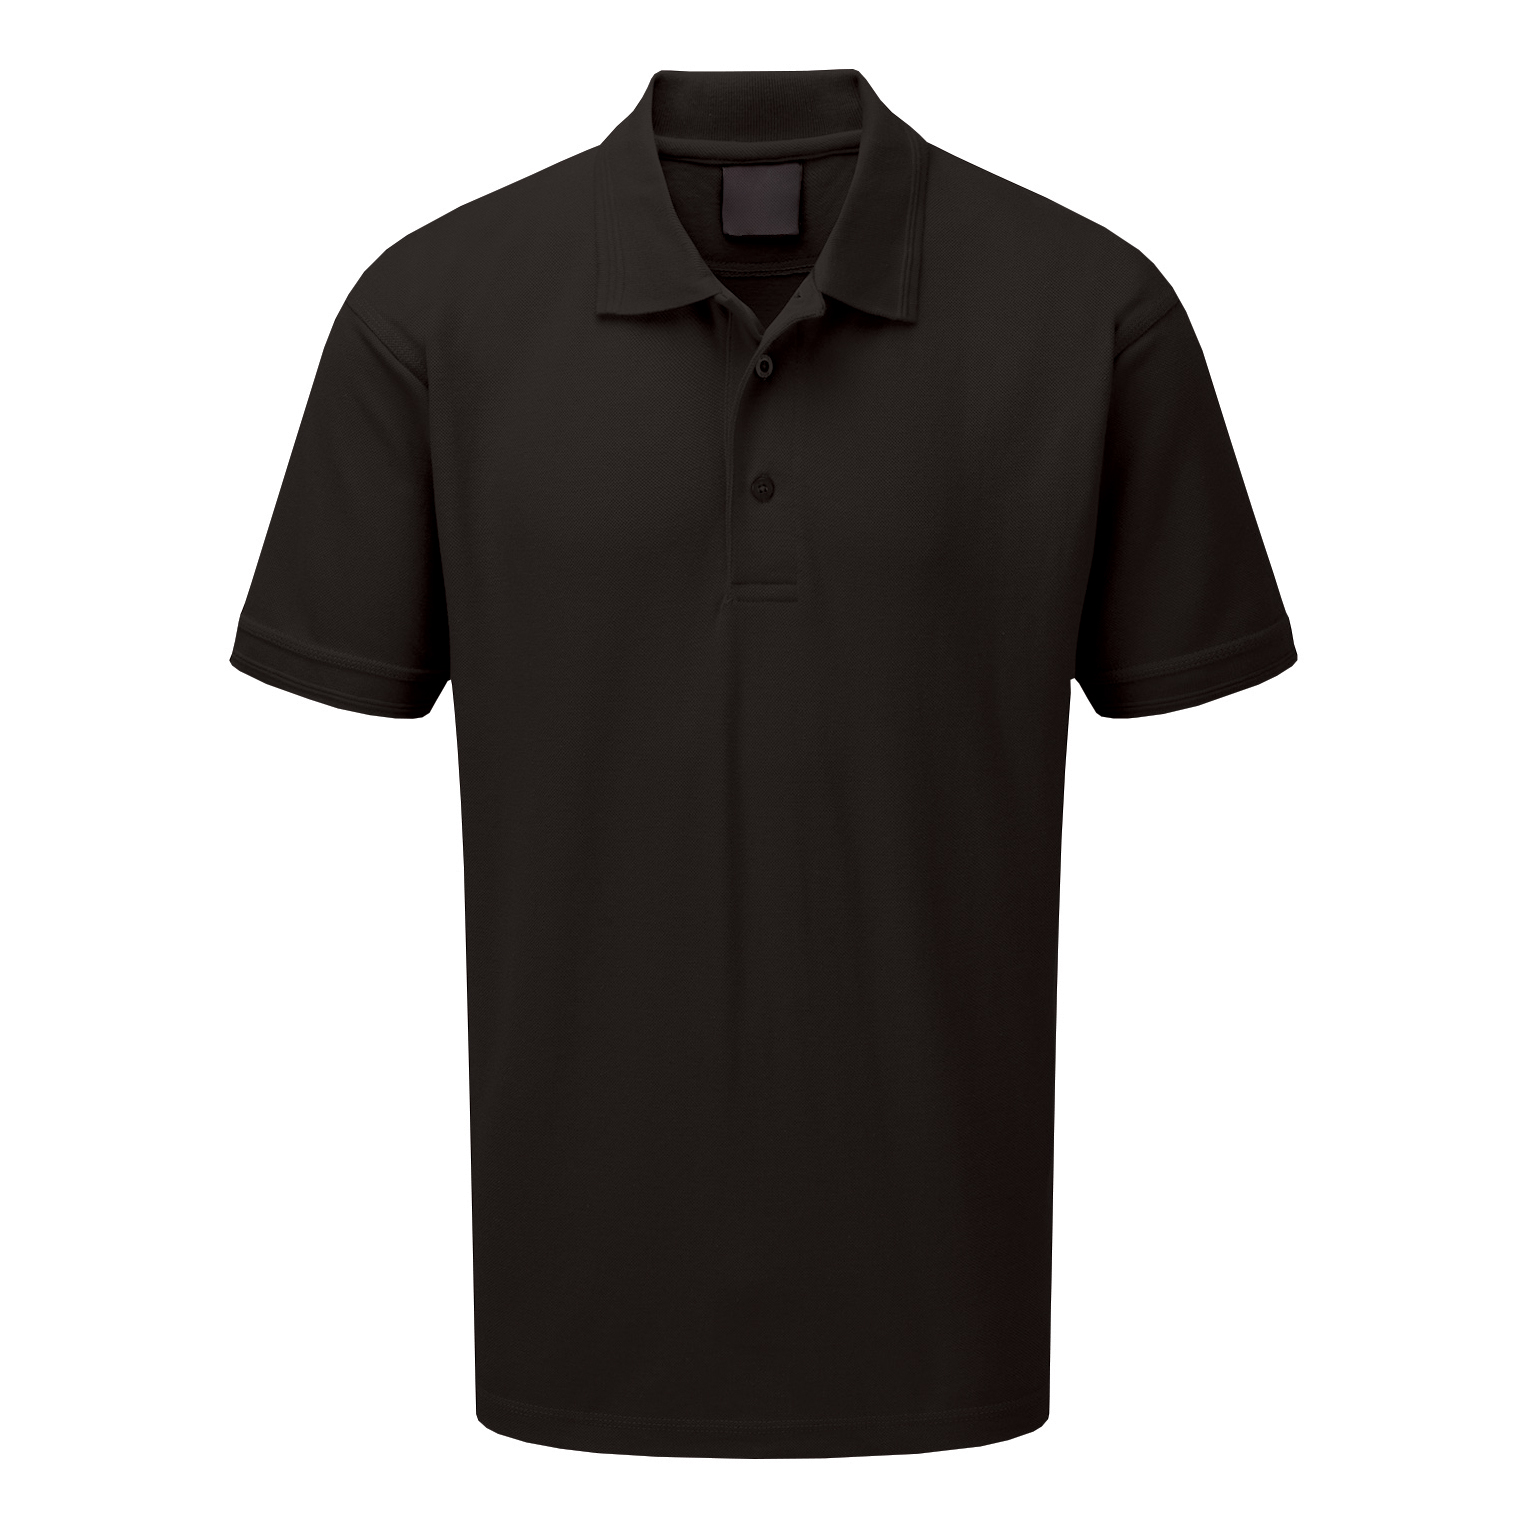 Supertouch Polo Shirt Classic Polycotton Small Black Ref 56CA1 *Approx 3 Day Leadtime*